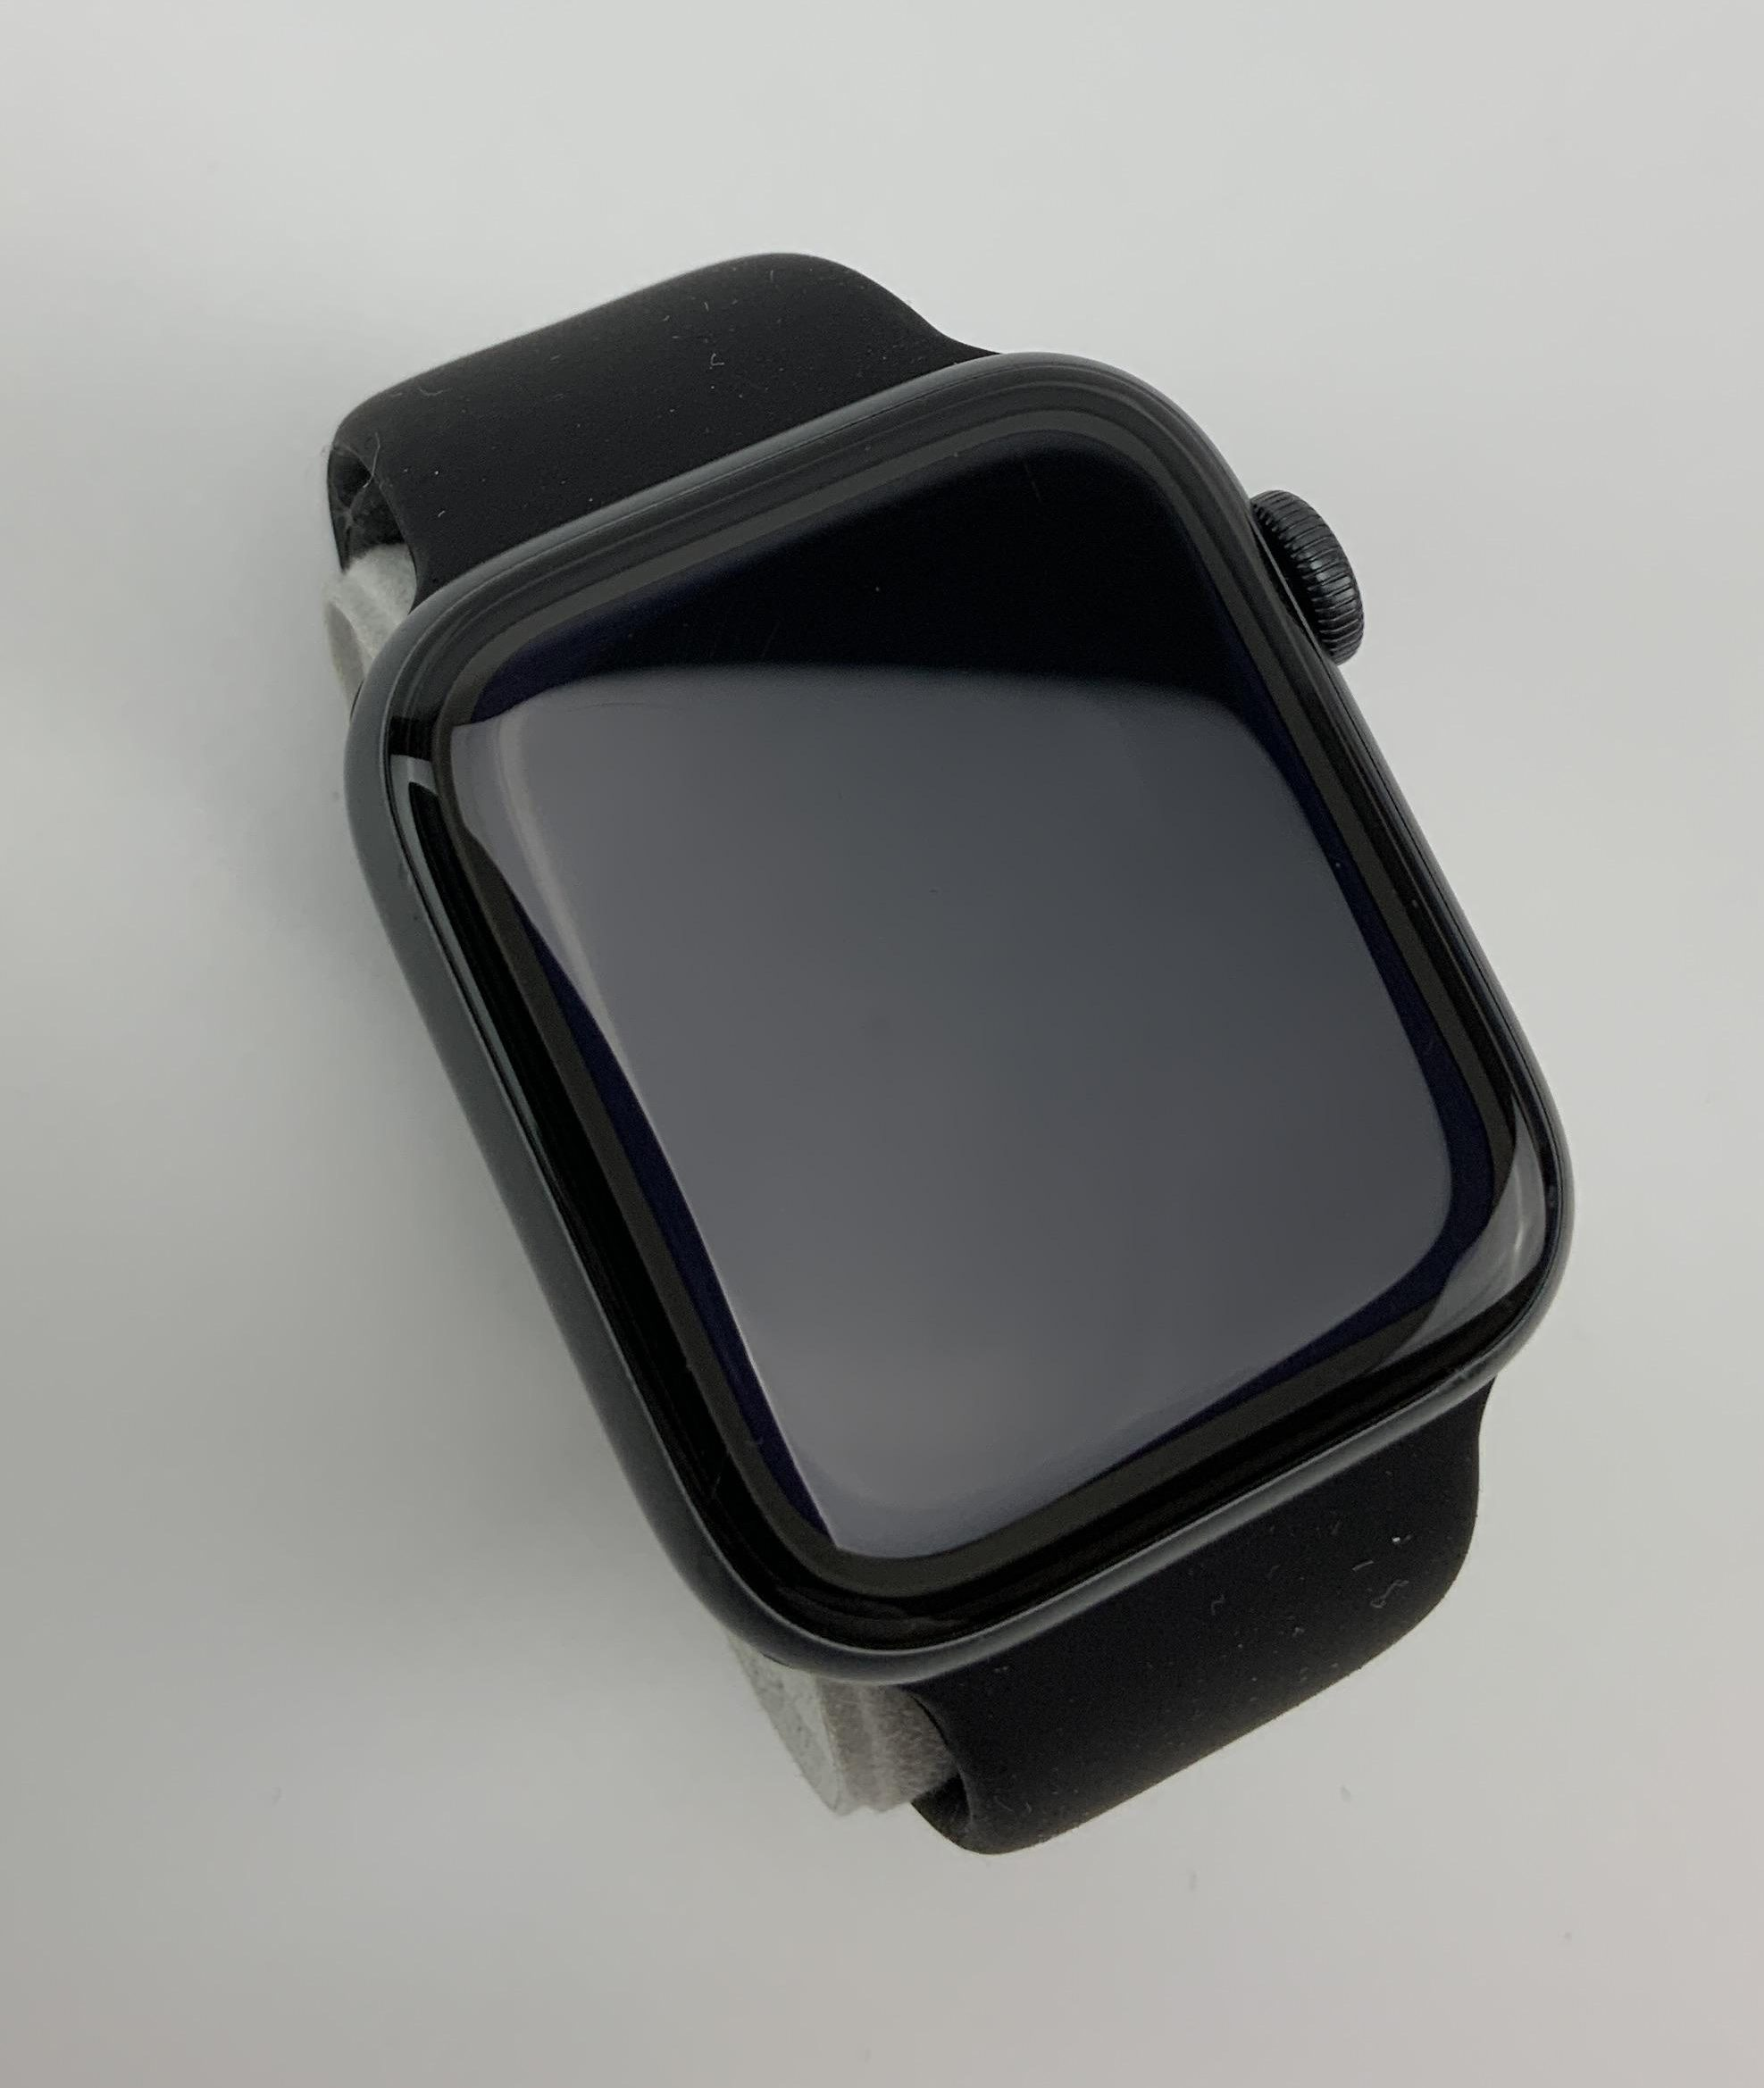 Watch Series 6 Aluminum (44mm), Space Gray, image 2